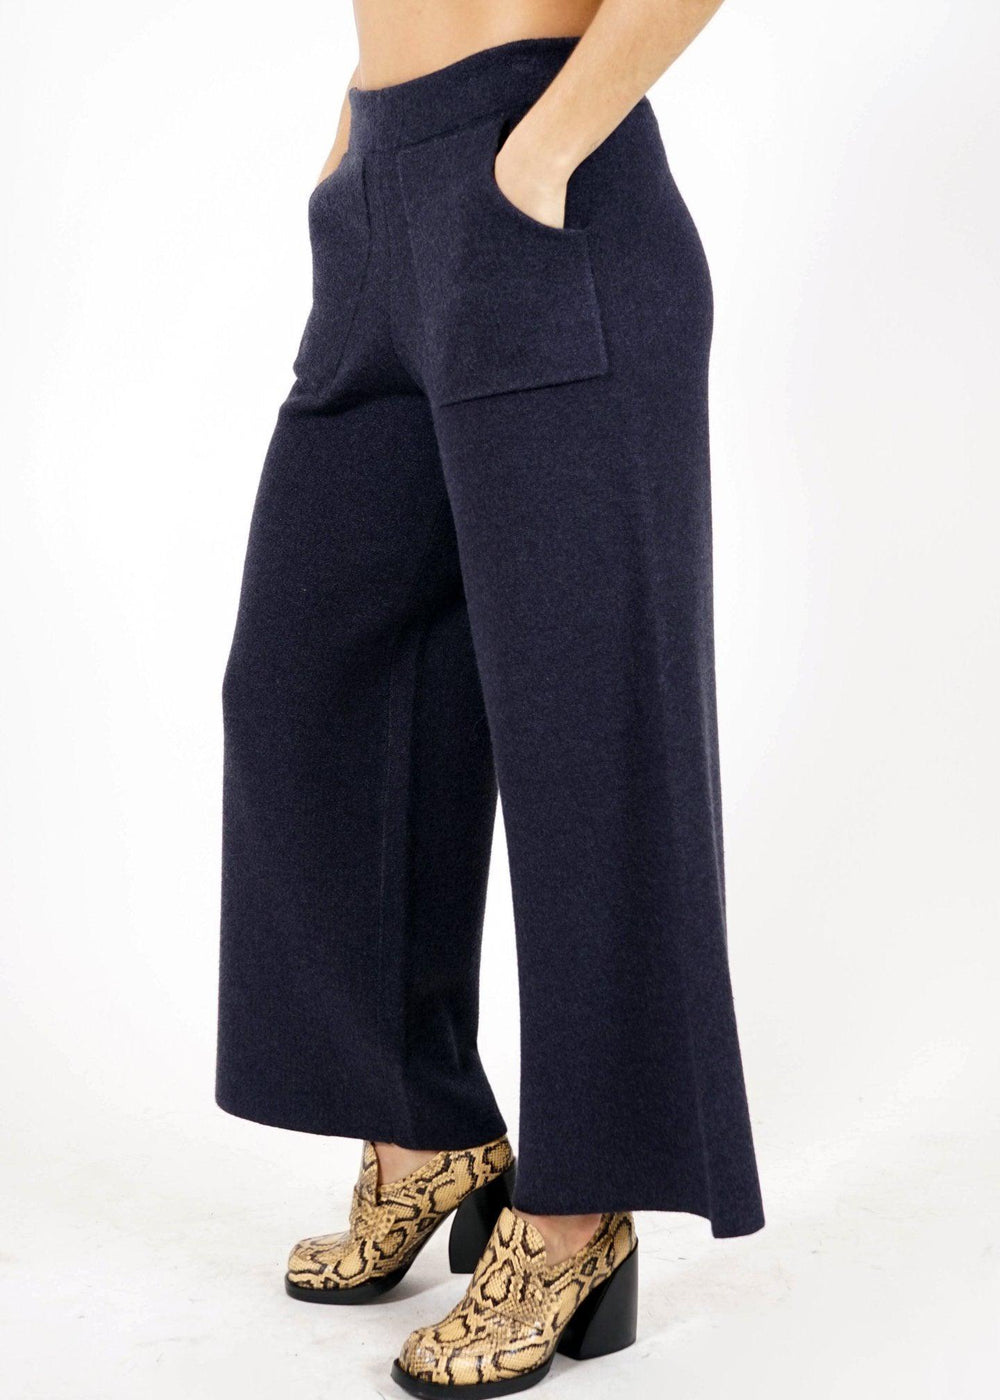 Knit Pant - Indigo Heather